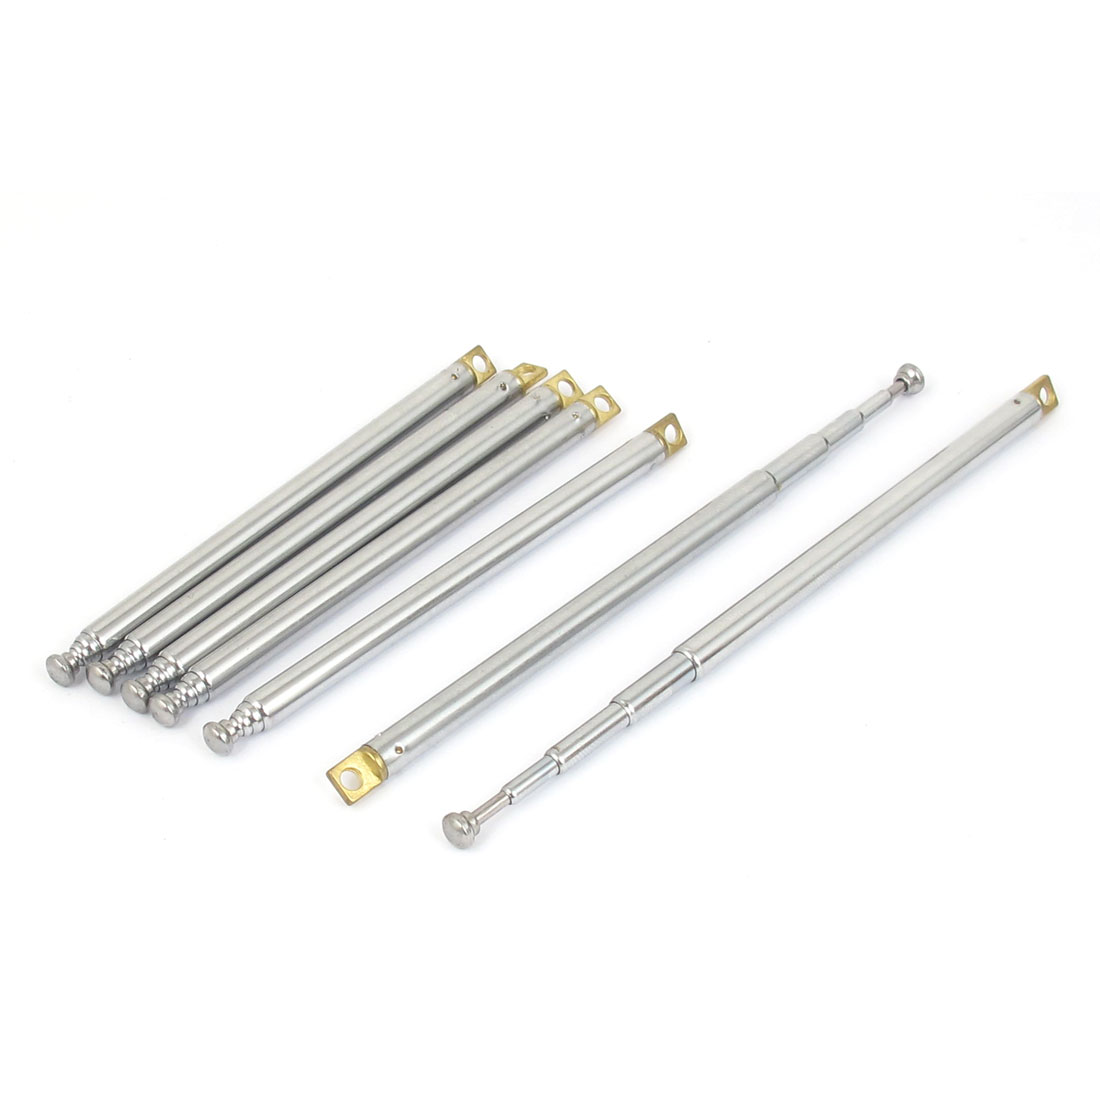 "7pcs 310mm 12"" Long Metal Rod 5 Sections Telescopic Antenna Aerial for FM Radio TV Control"